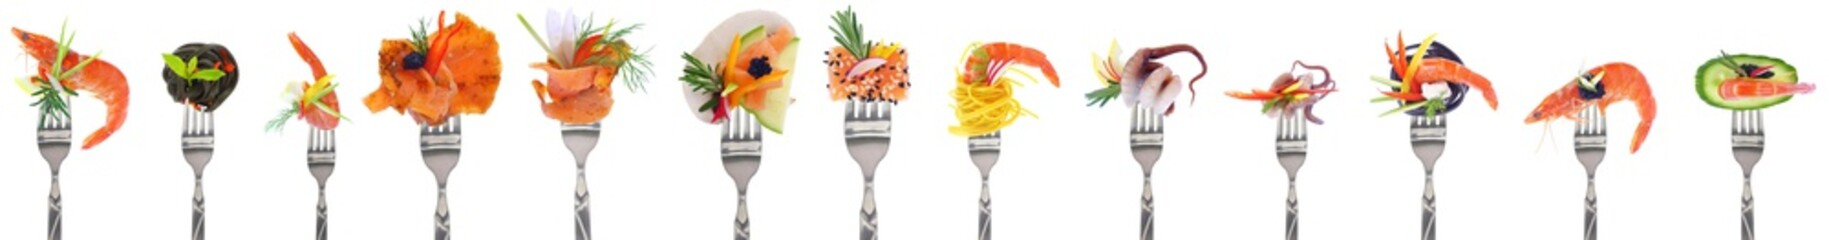 Fototapeta Variety of seafood starters - white background